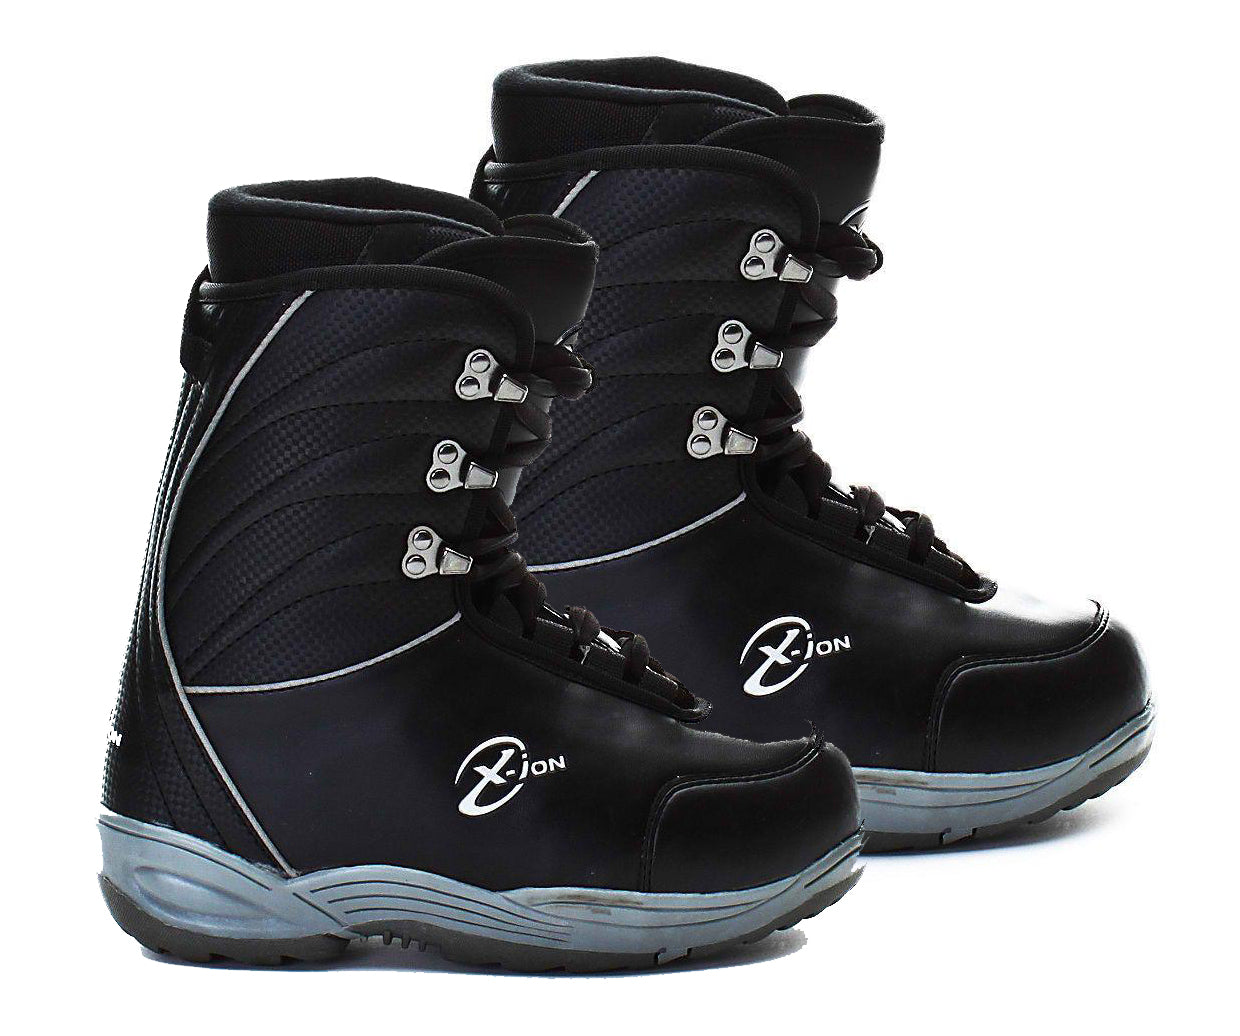 Black Dragon X Ion Womens Snowboard Boots Black sizes 5.5 or 6.5 or 7.5